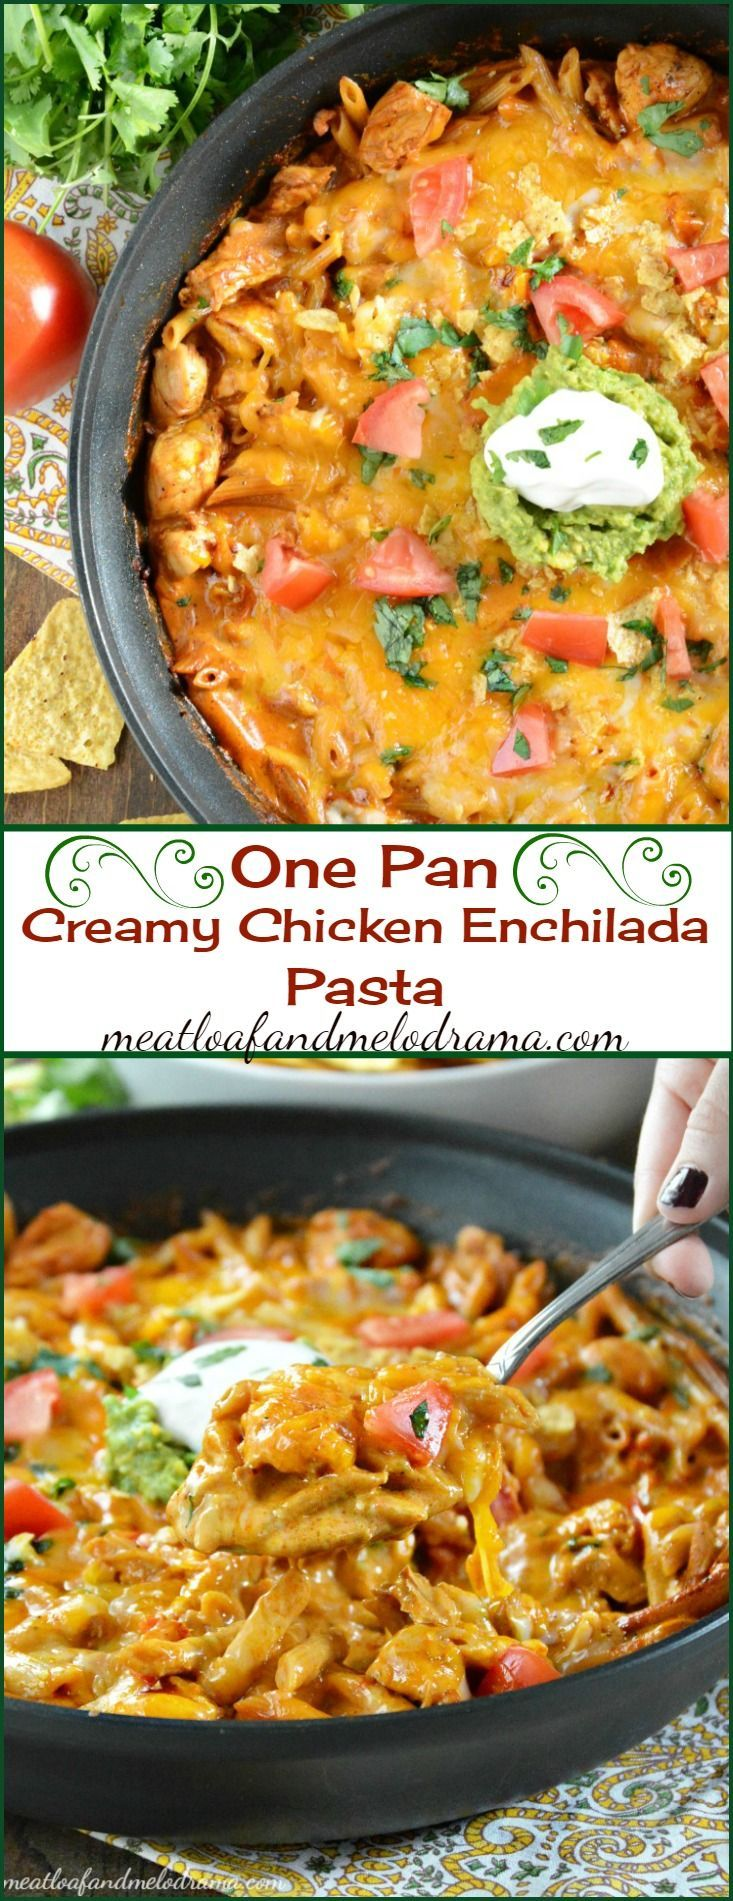 One Pan Creamy Chicken Enchilada Pasta - Meatloaf and Melodrama